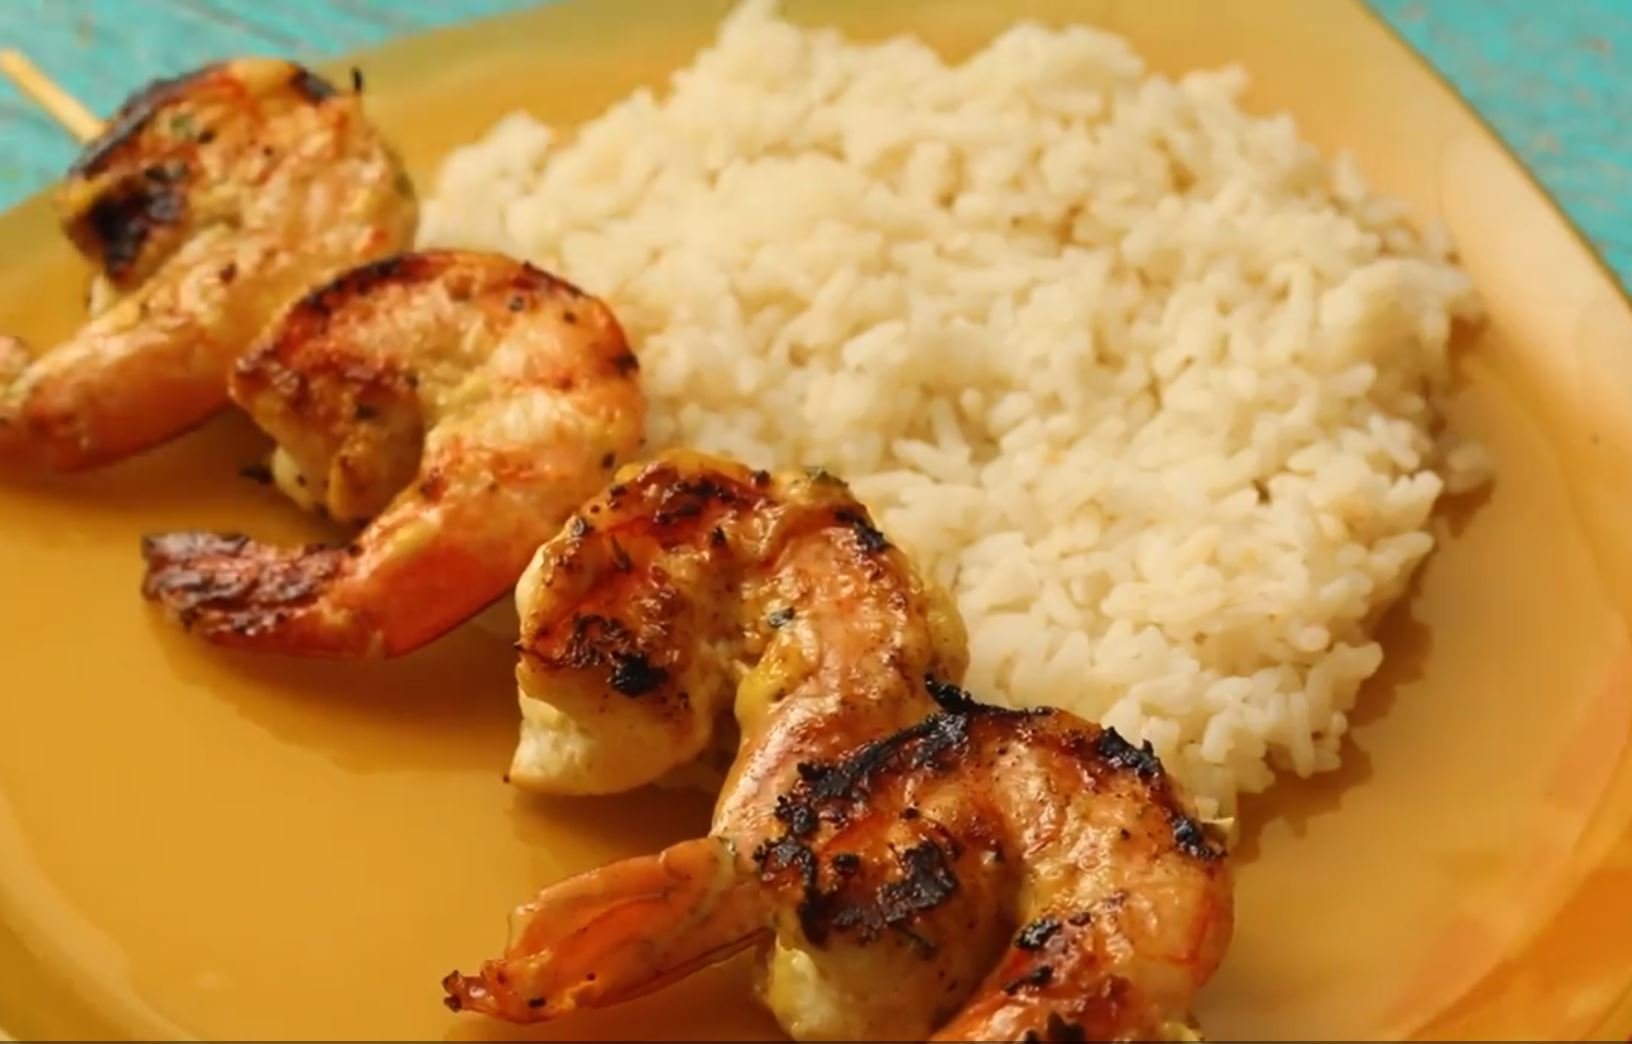 """""""This recipe is great for hibachi on the beach or in your backyard,"""" says Nancy LY. """"If you're not in Hawaii or near a beach, you can also broil it in your oven. It's a easy way to prepare a shrimp dish that's 'ono' (delicious) and moist! You can serve this either as an appetizer (pupu) or entree. I prepare it either with or without the shells on -- depending on how fast I want people to eat 'um up! Aloha from Hawaii! Enjoy!"""""""